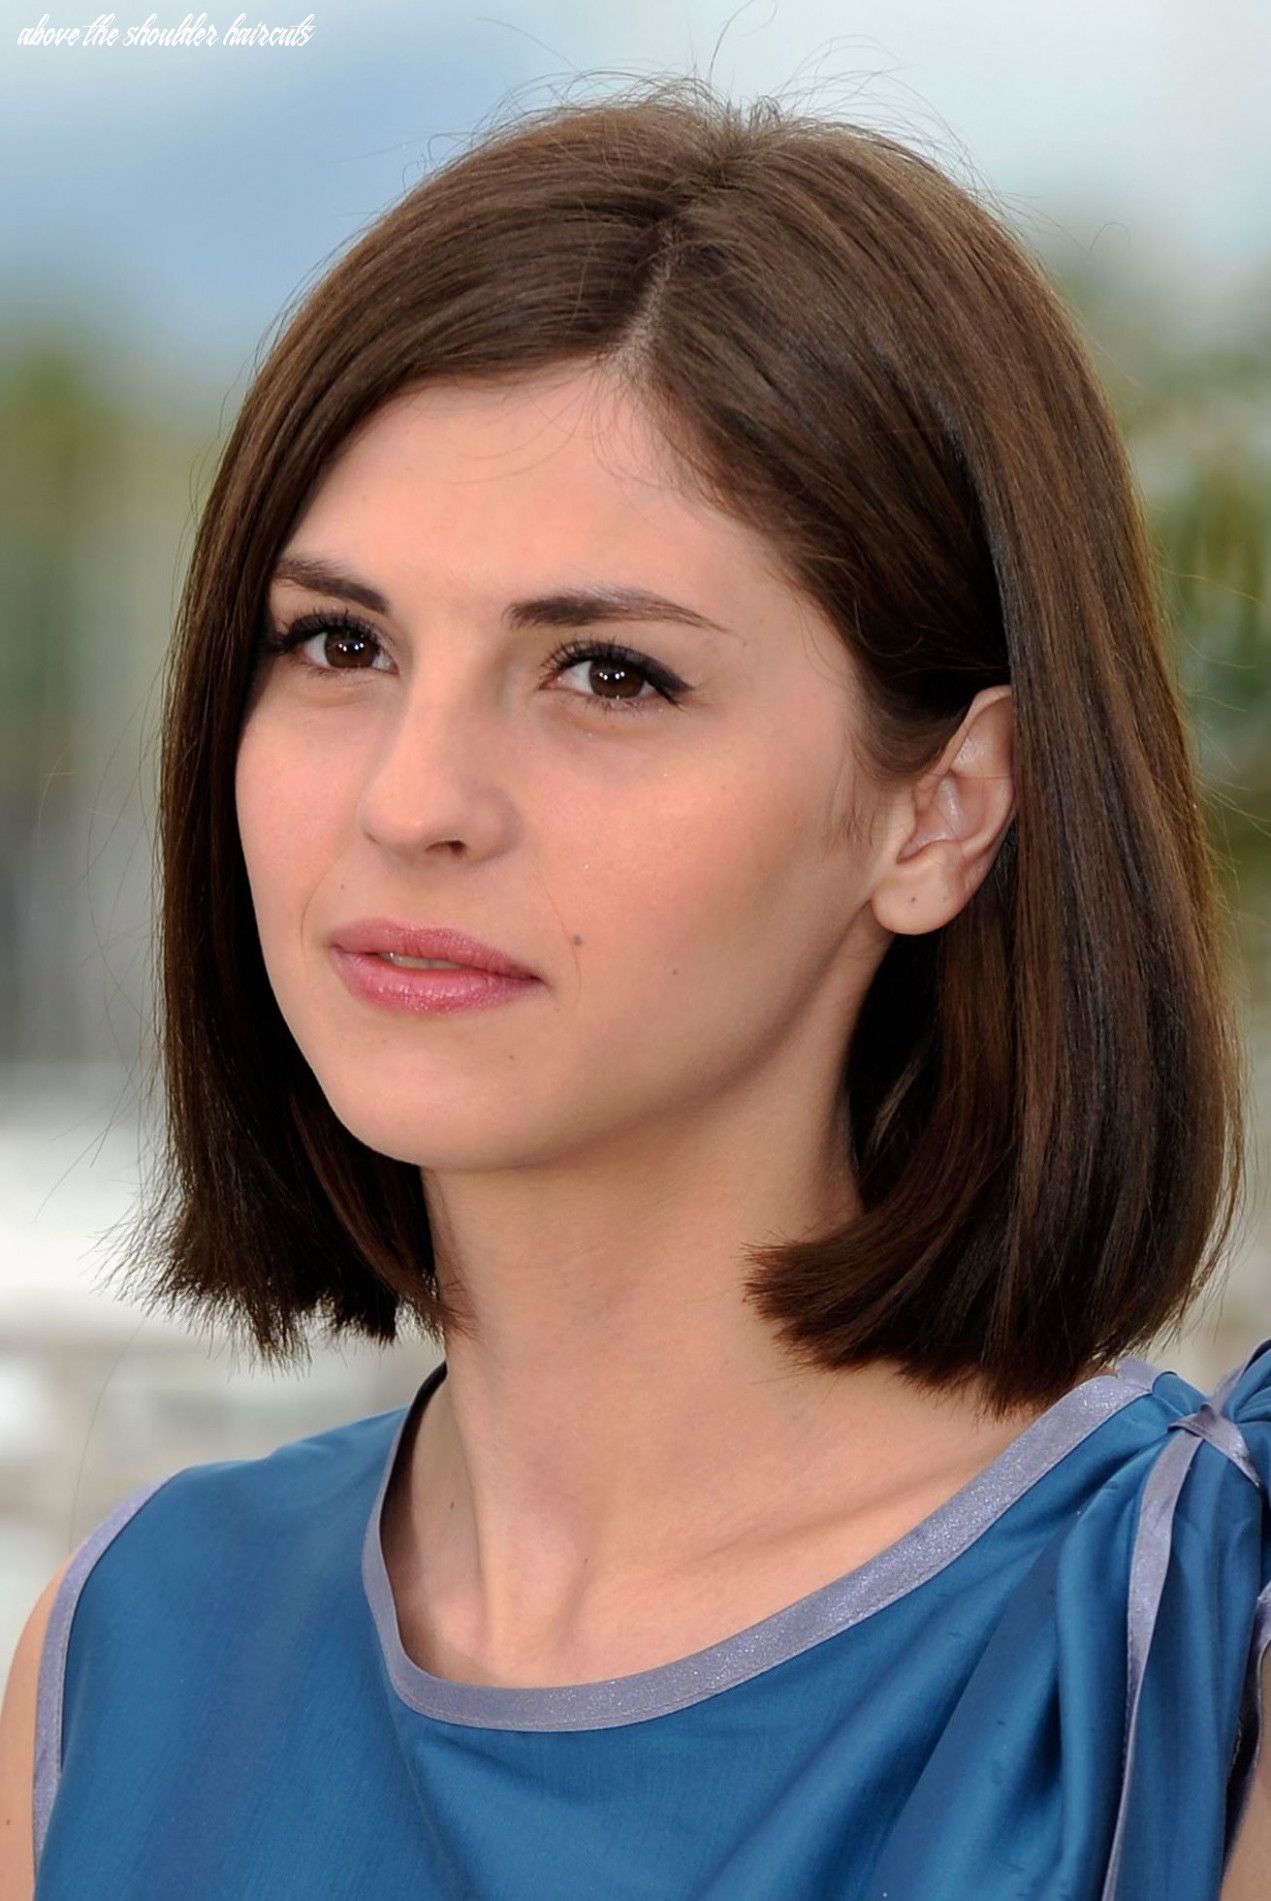 Pin on simply stylish above the shoulder haircuts